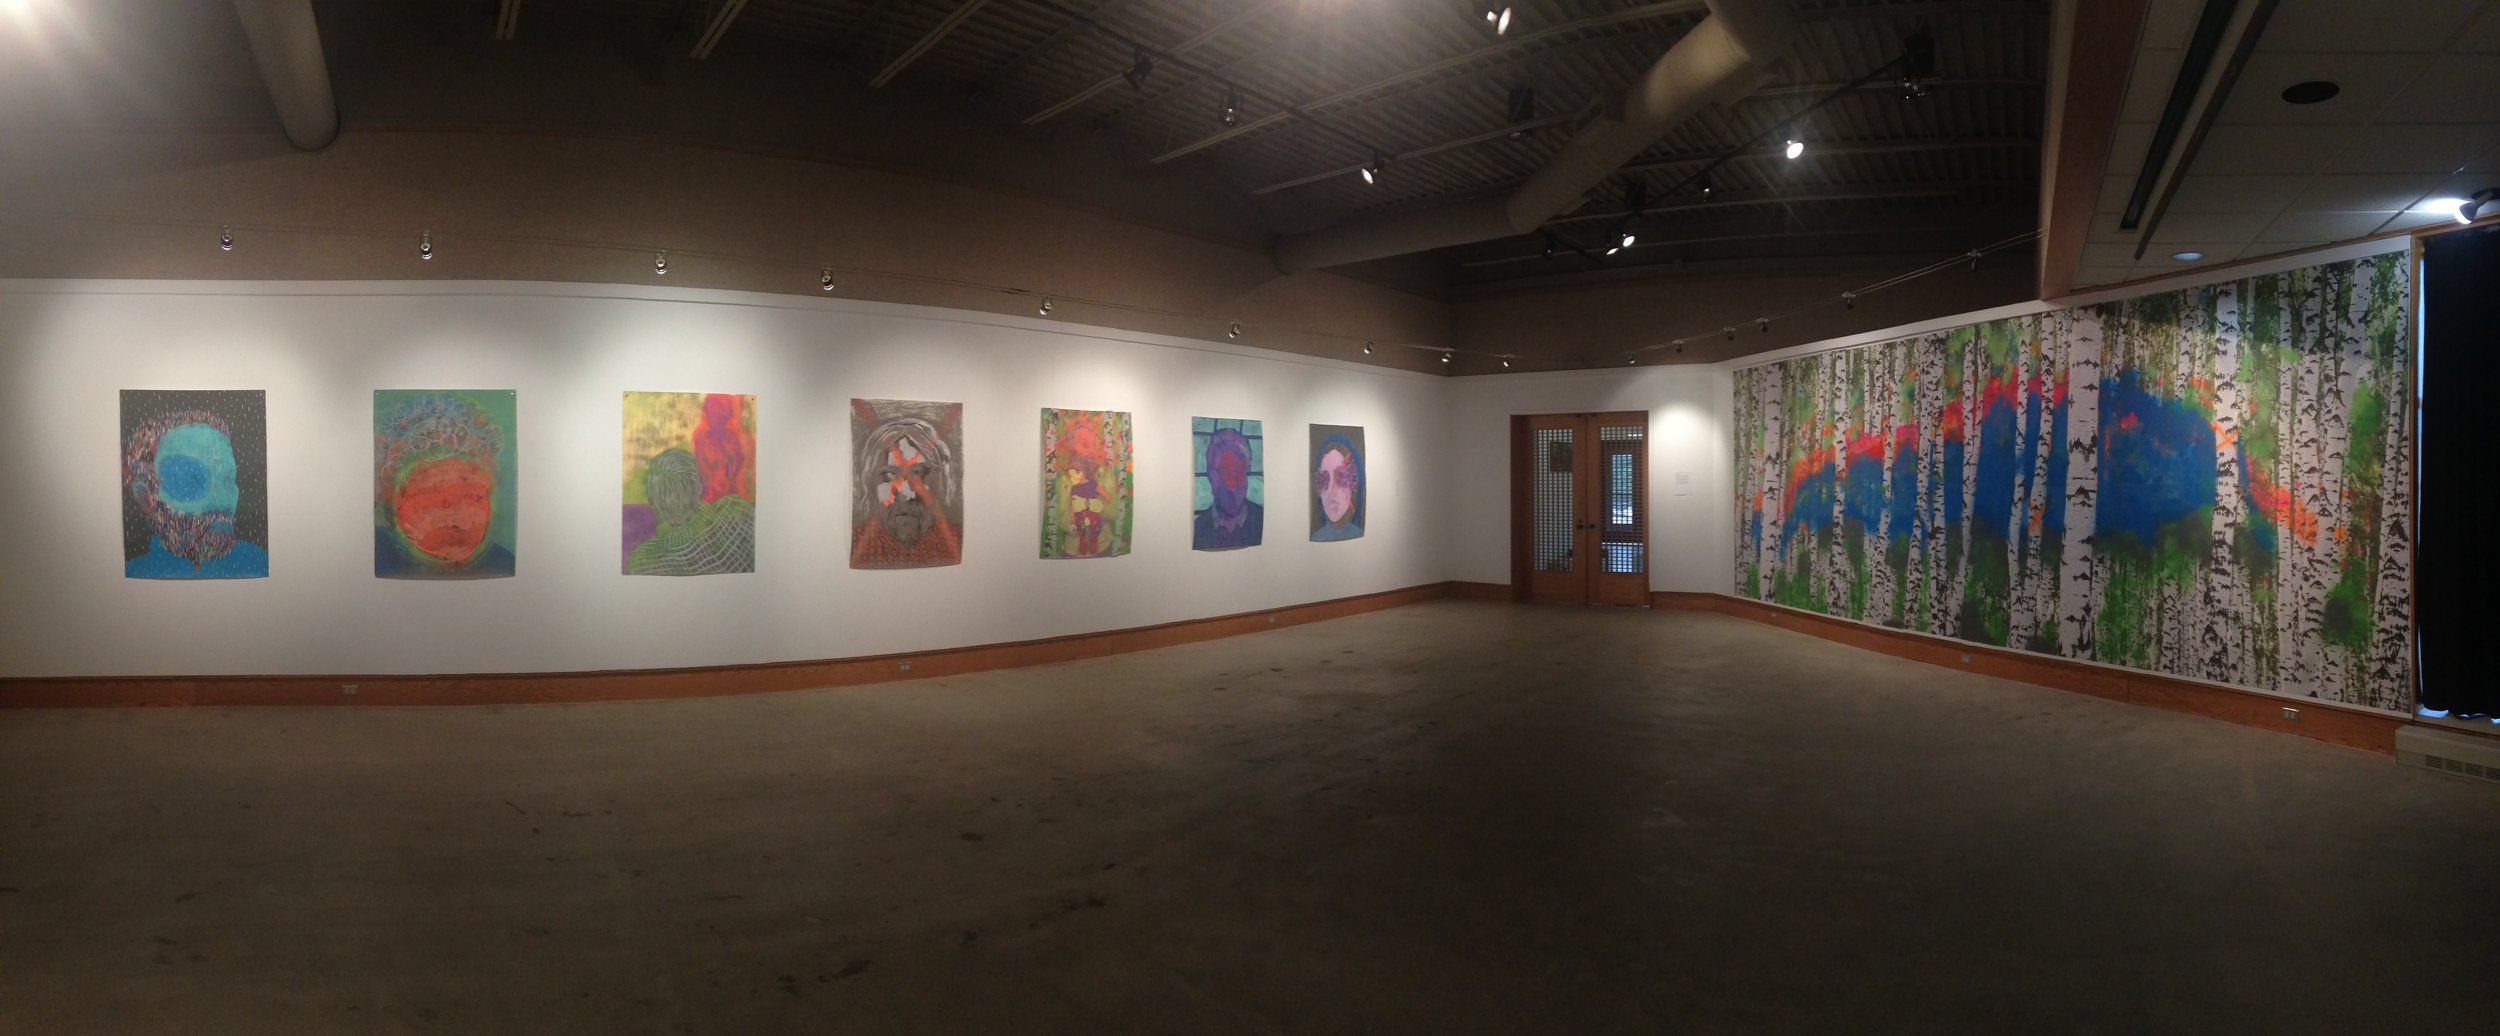 Jackie Hoving, Installation Views: Presence, Caestecker Gallery,  Ripon College, WI